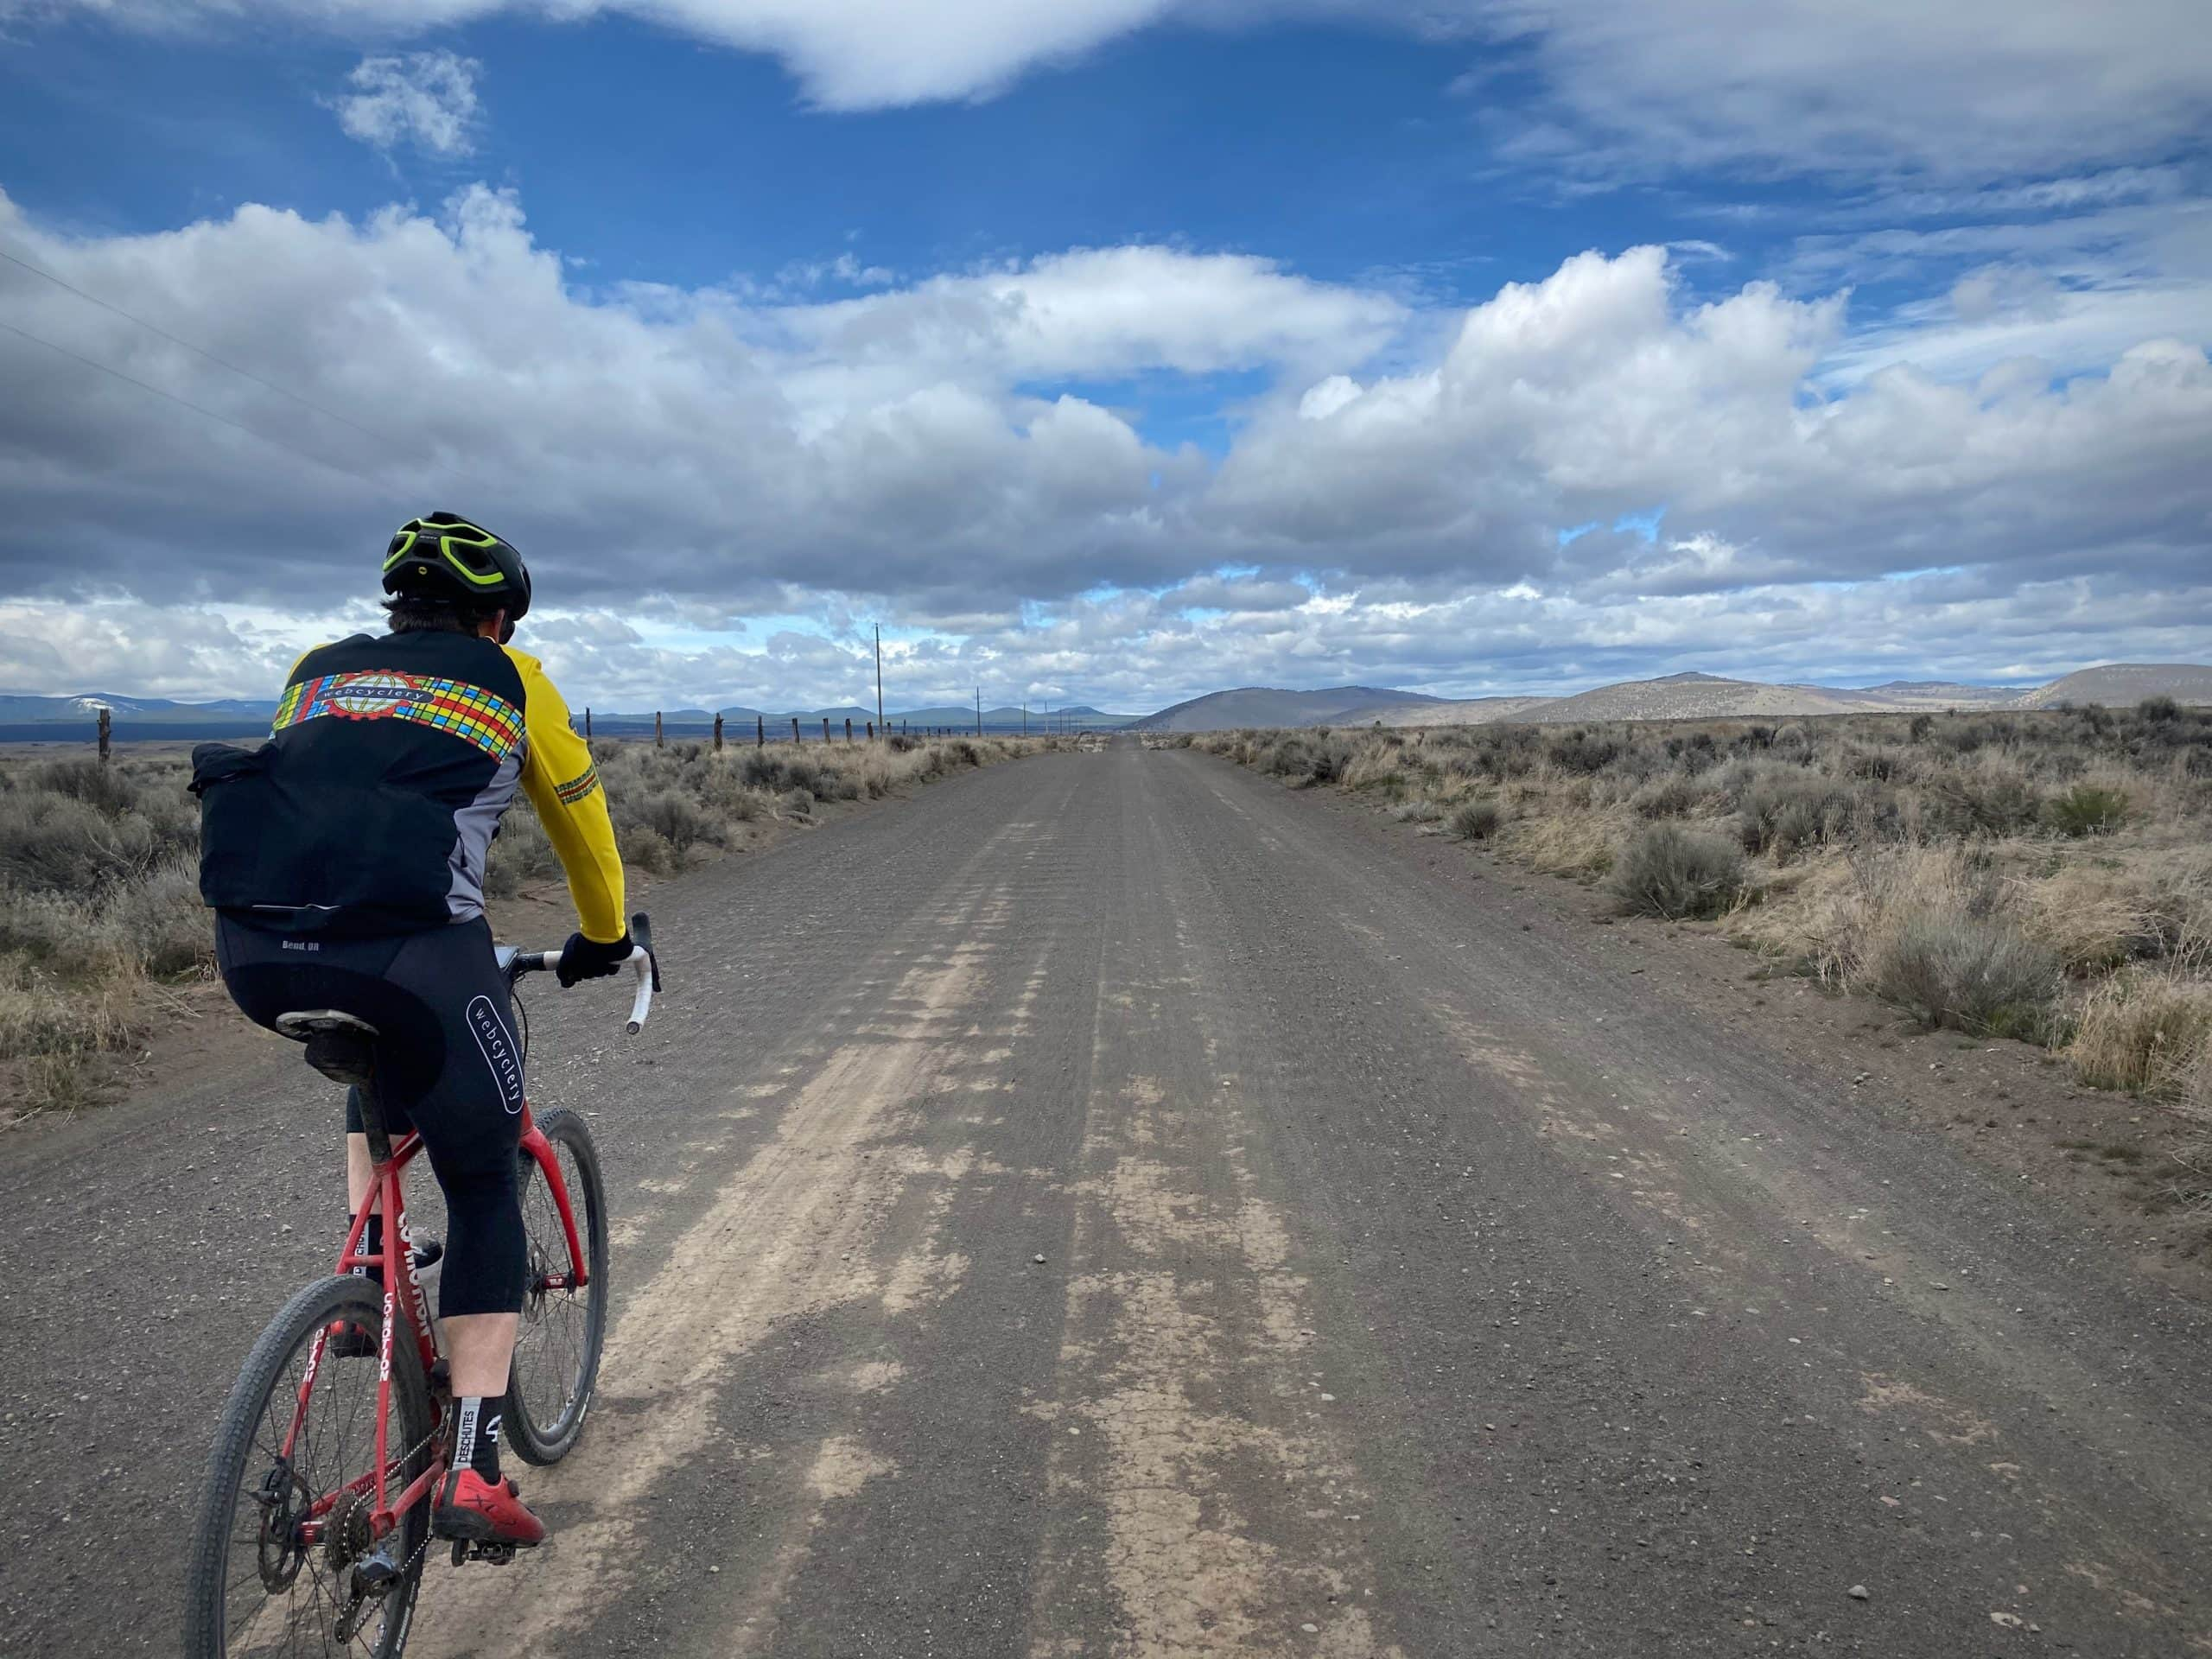 Gravel cyclist on Ford road near Bend, OR.